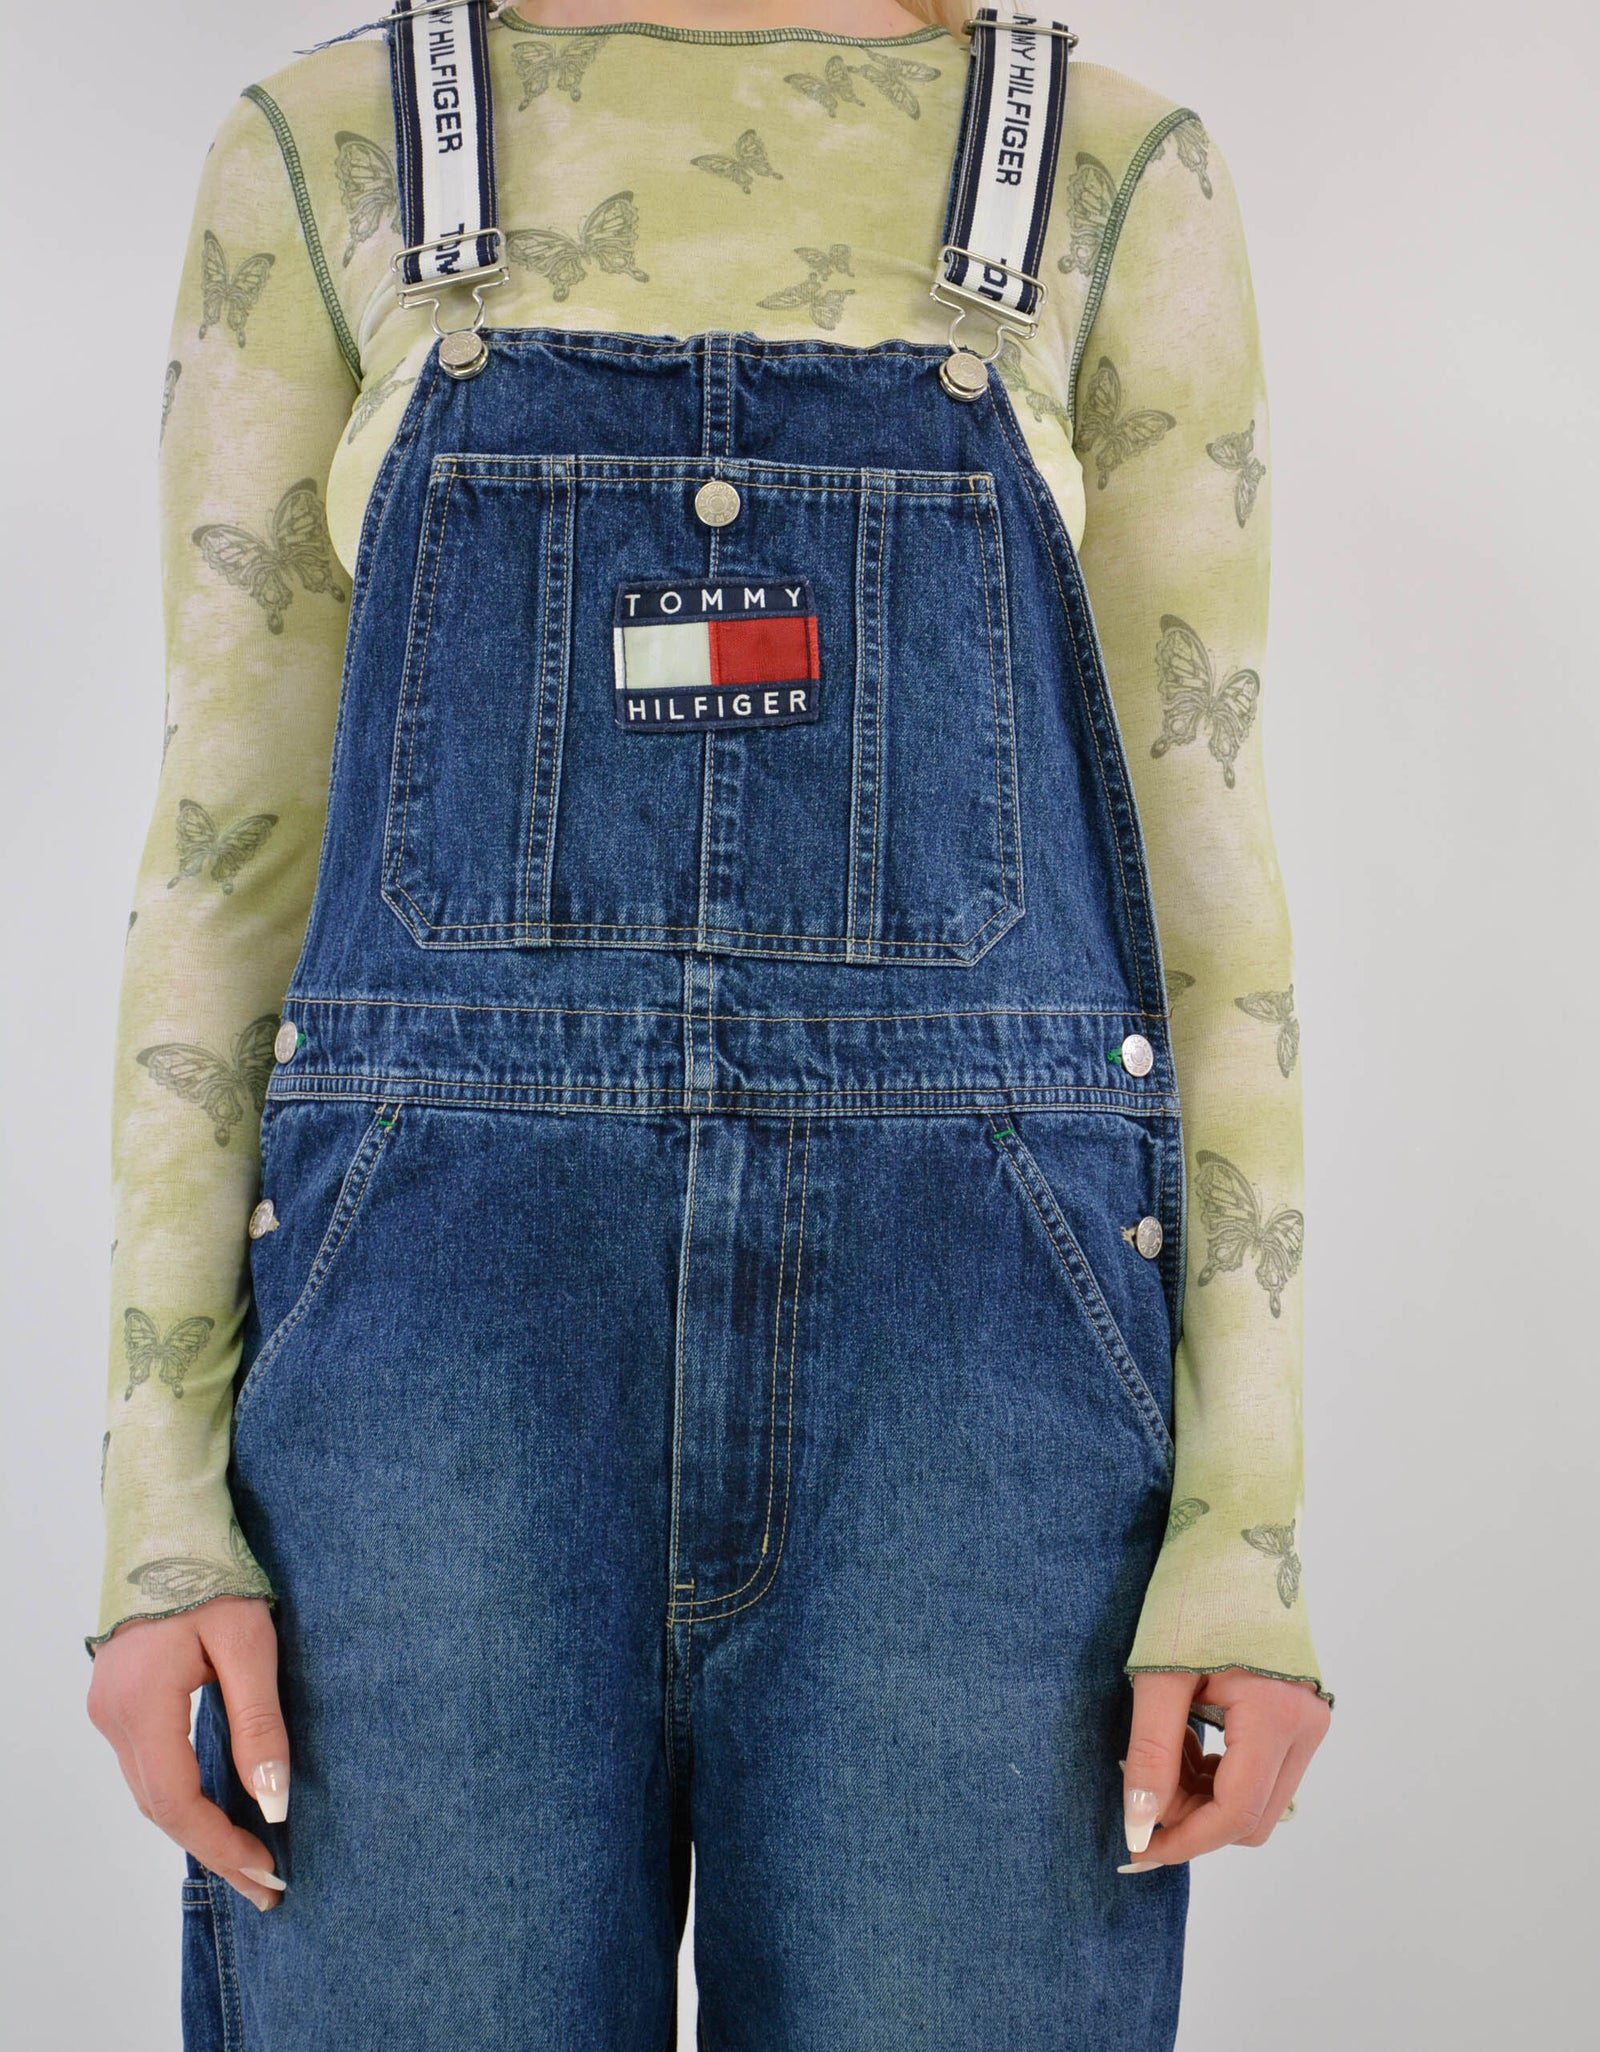 Tommy dungaree - PICKNWEIGHT - VINTAGE KILO STORE